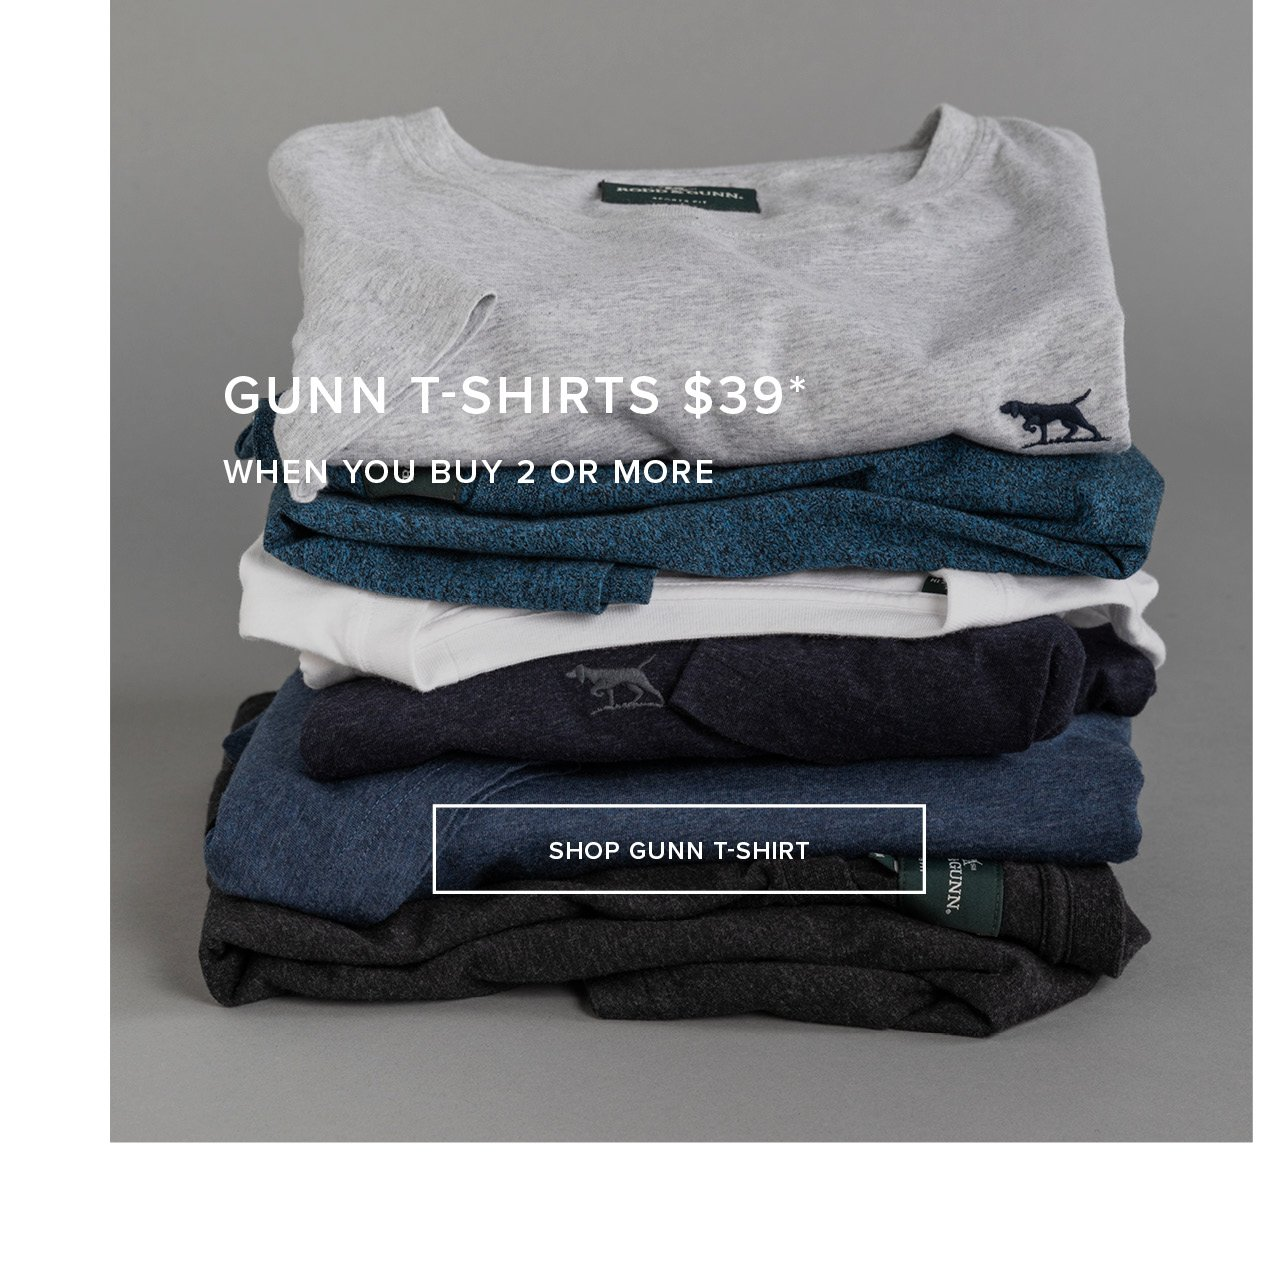 Gunn T-Shirts - 39* When You Buy 2 Or More